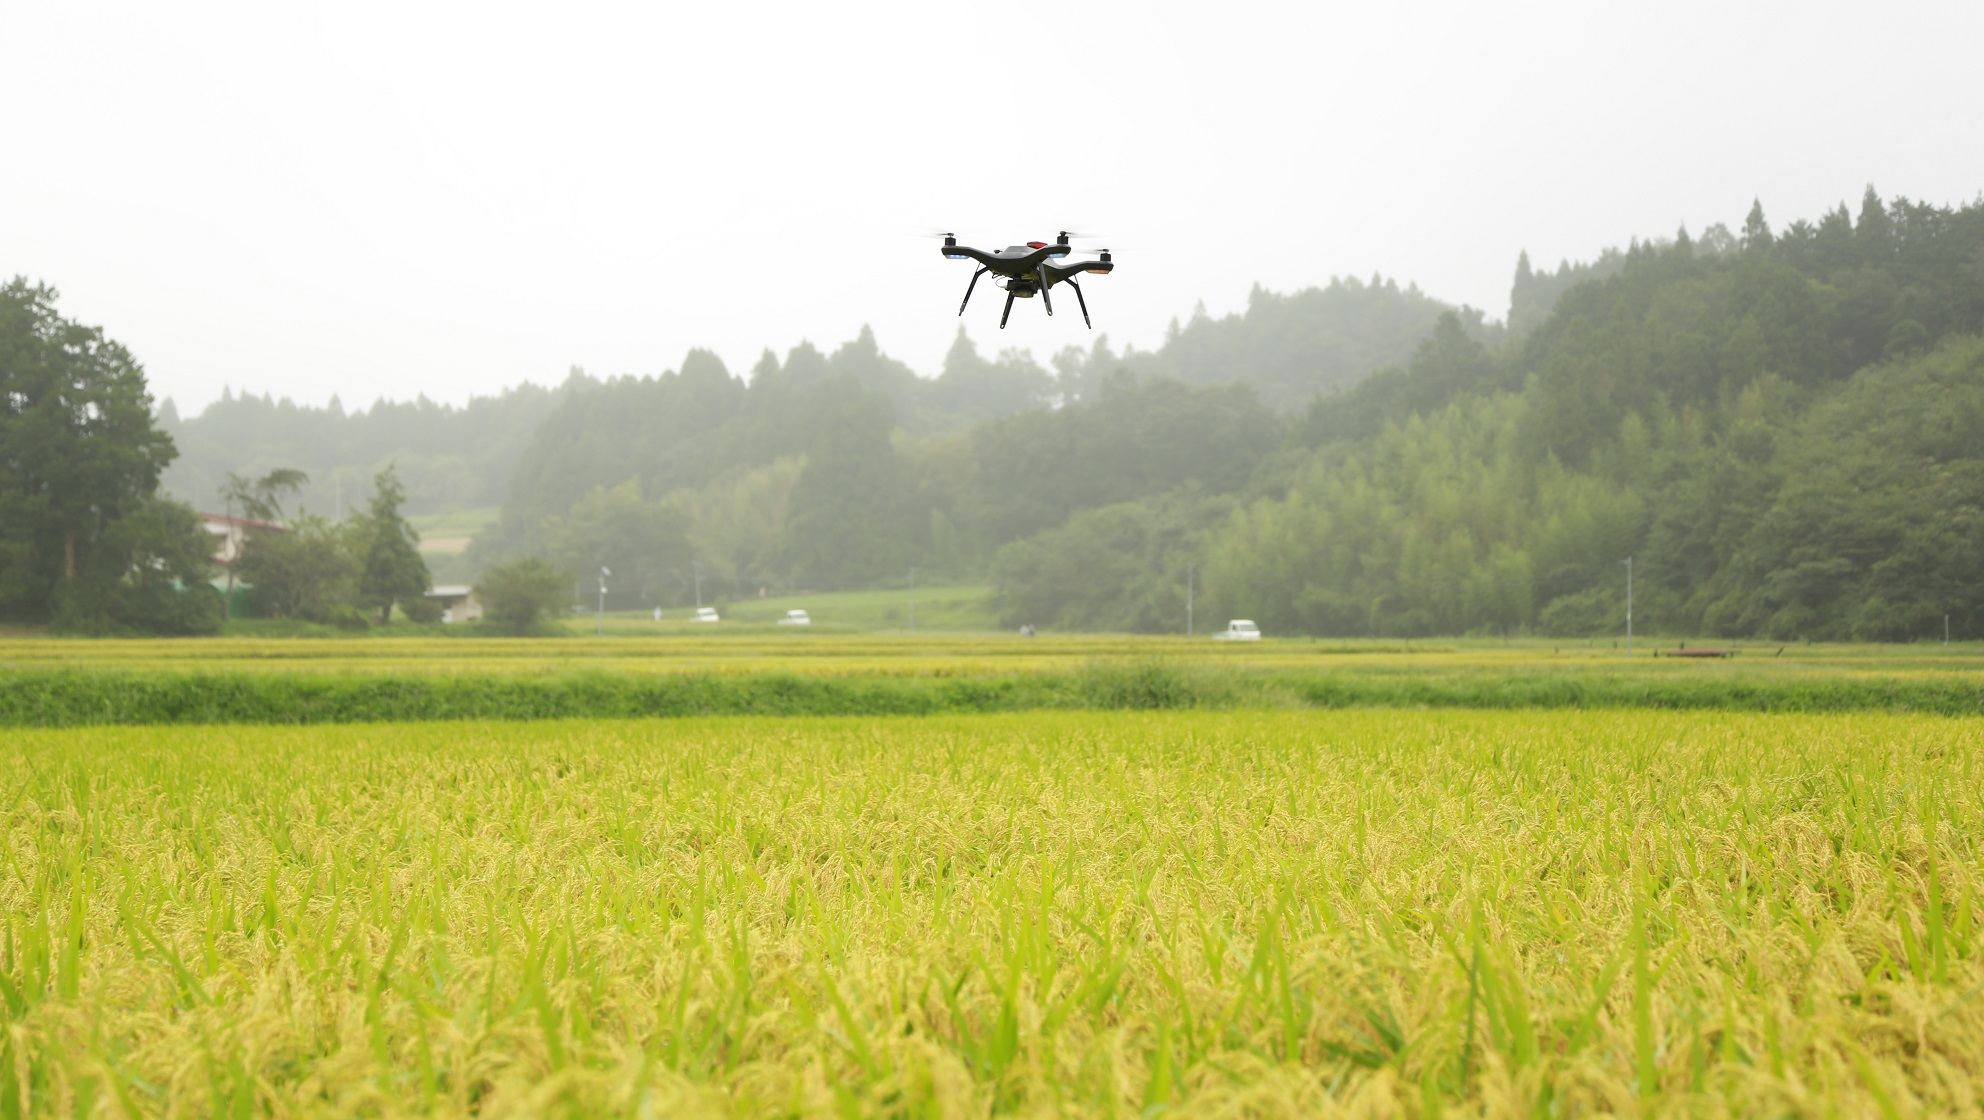 A 3DR Solo flying over the rice field